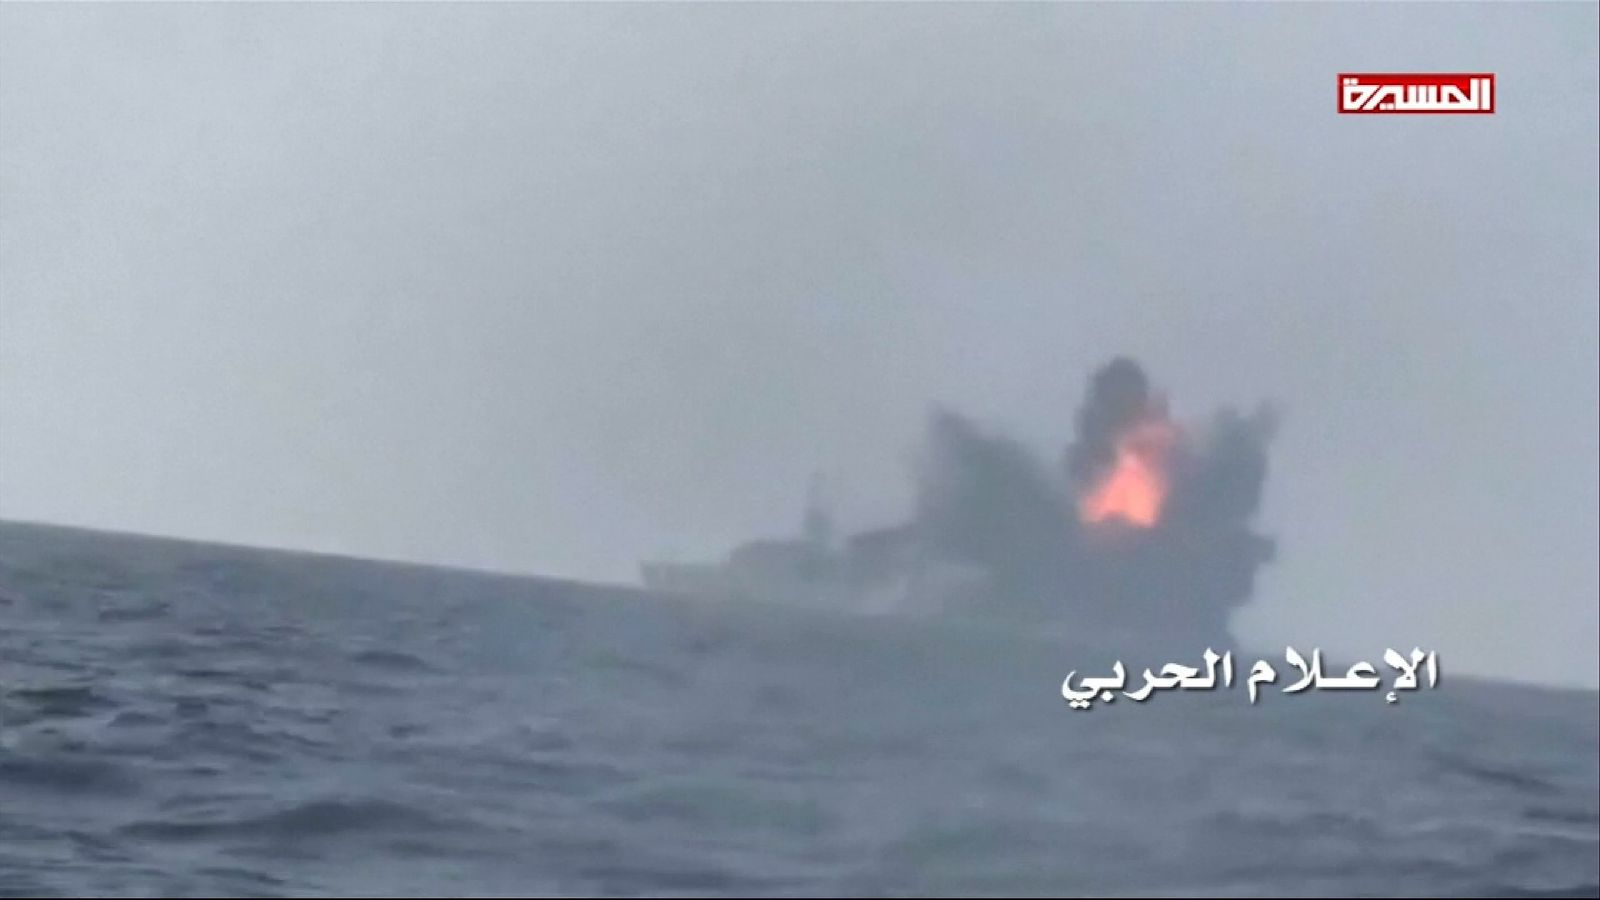 A Houthi 'suicide boat' rams a Saudi warship of the Yemeni coast